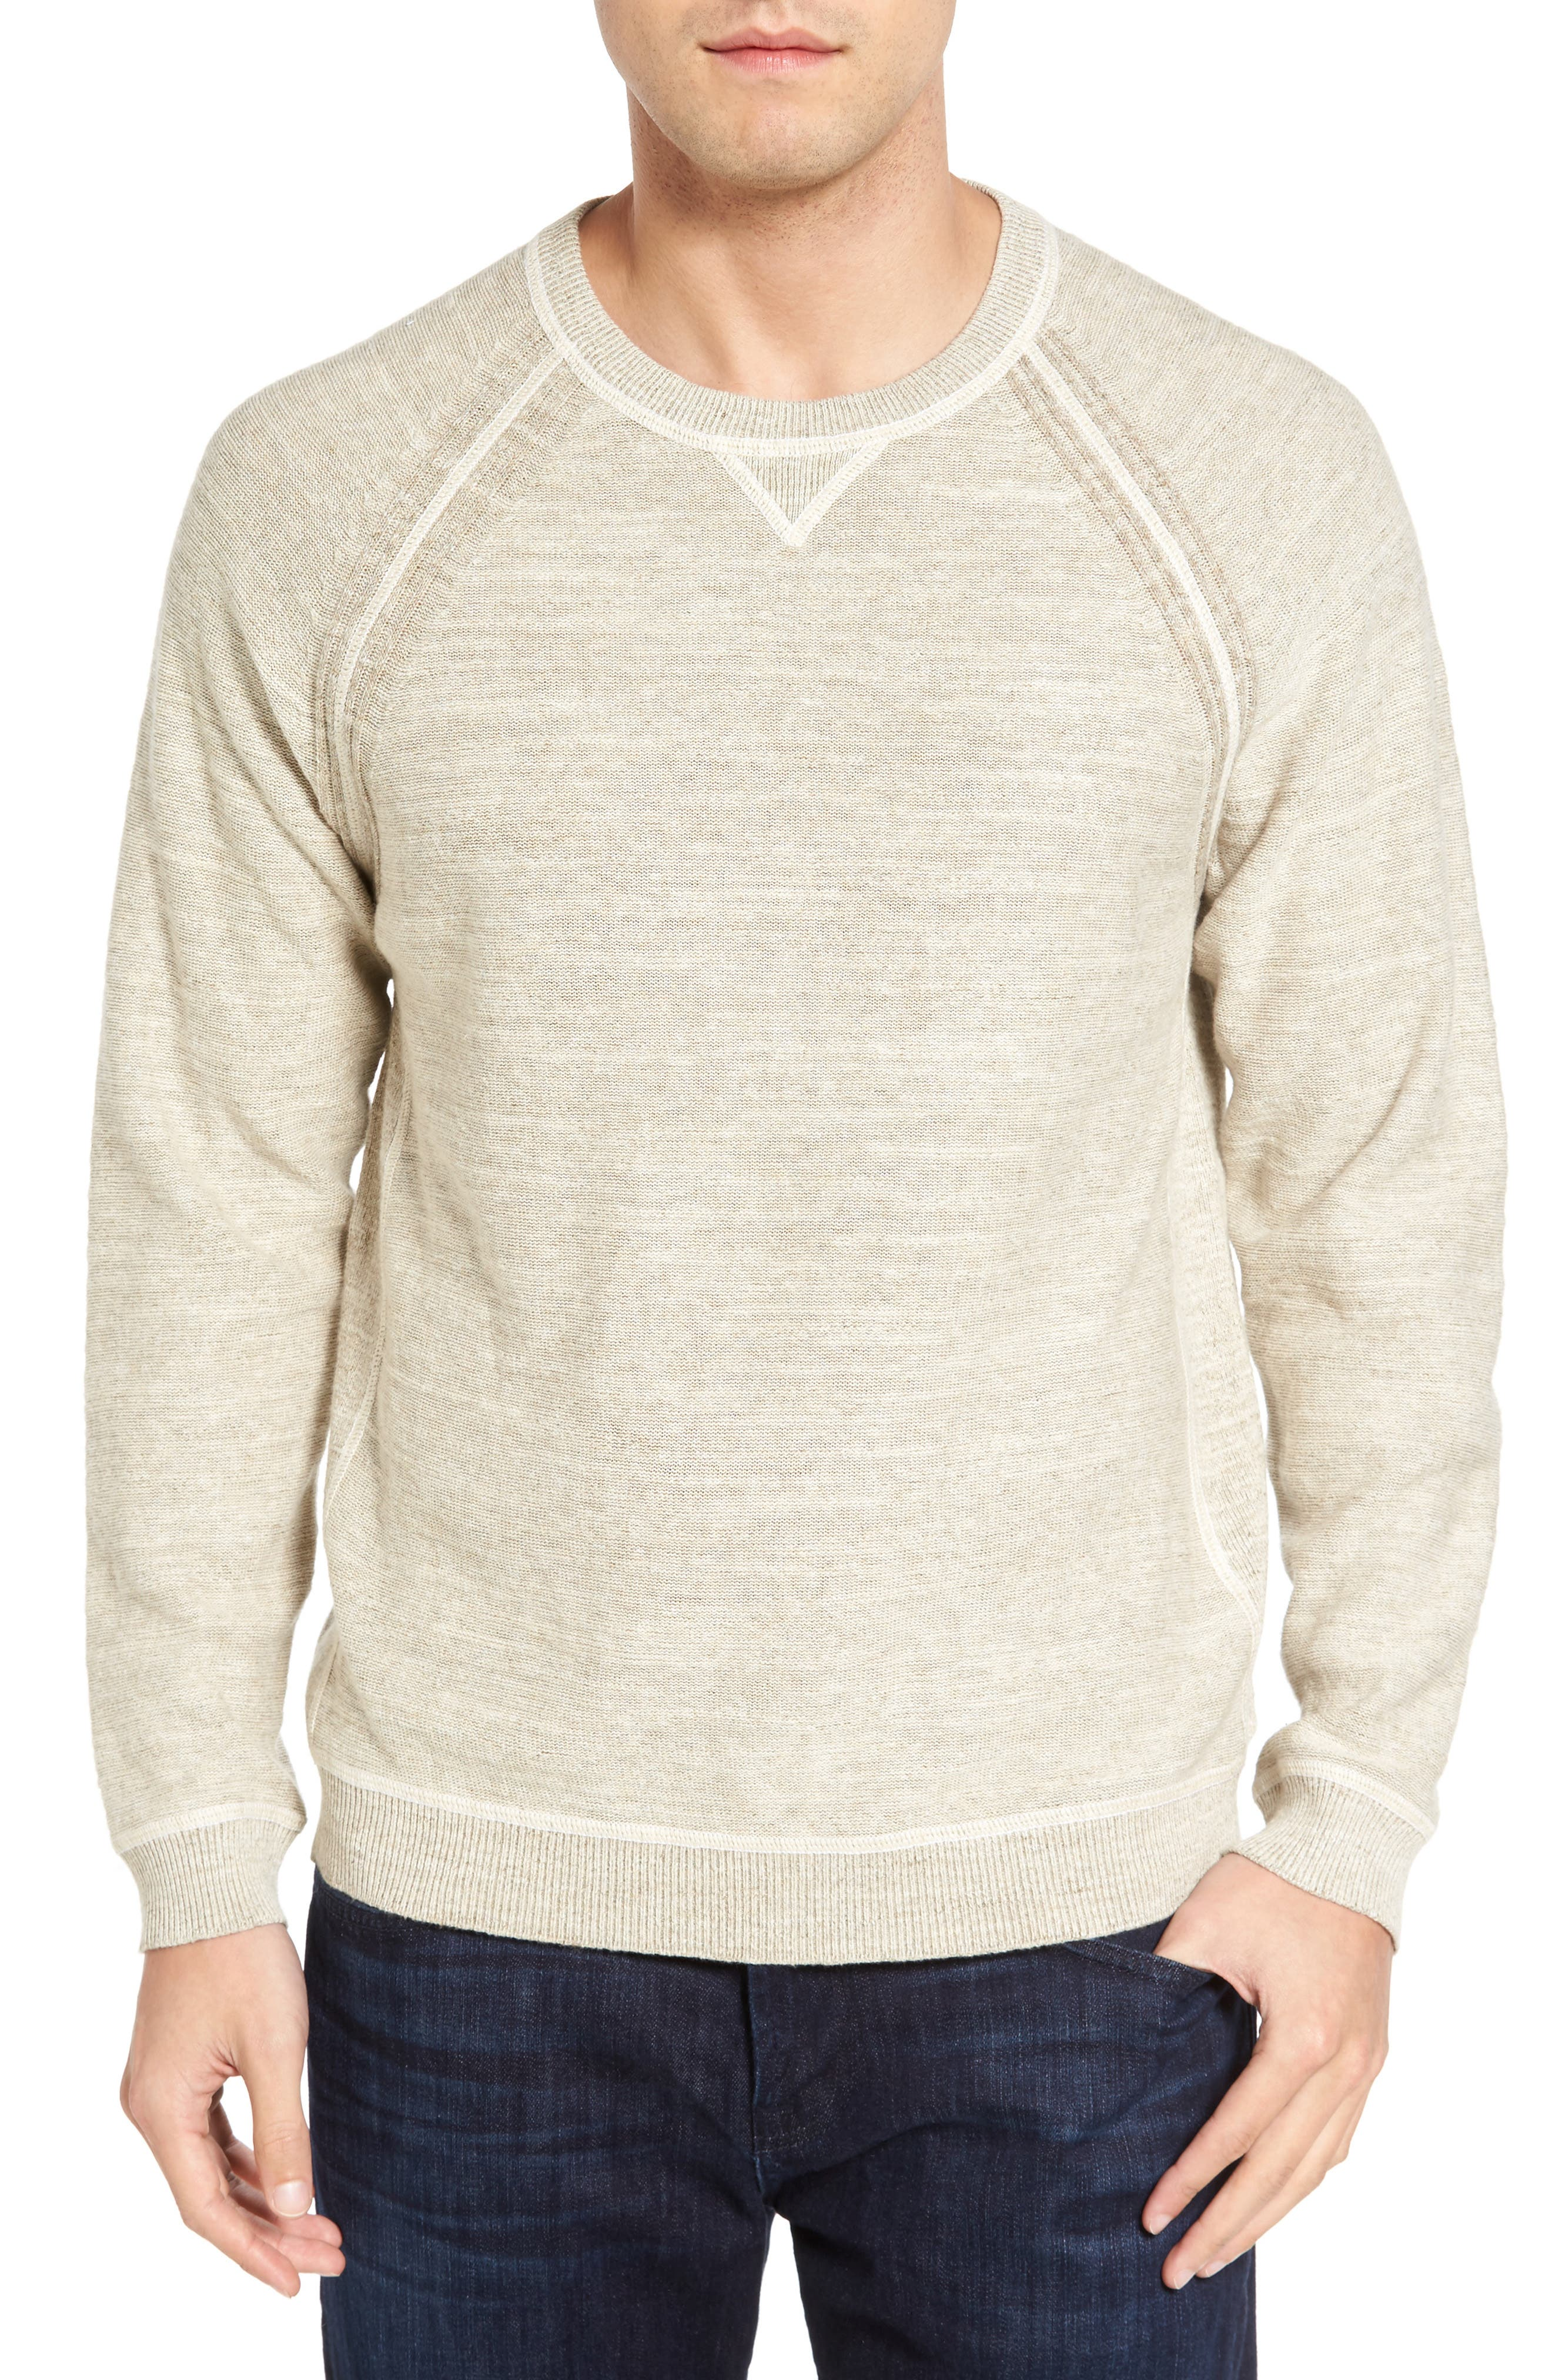 Tommy Bahama Sandy Bay Reversible Crewneck Sweater